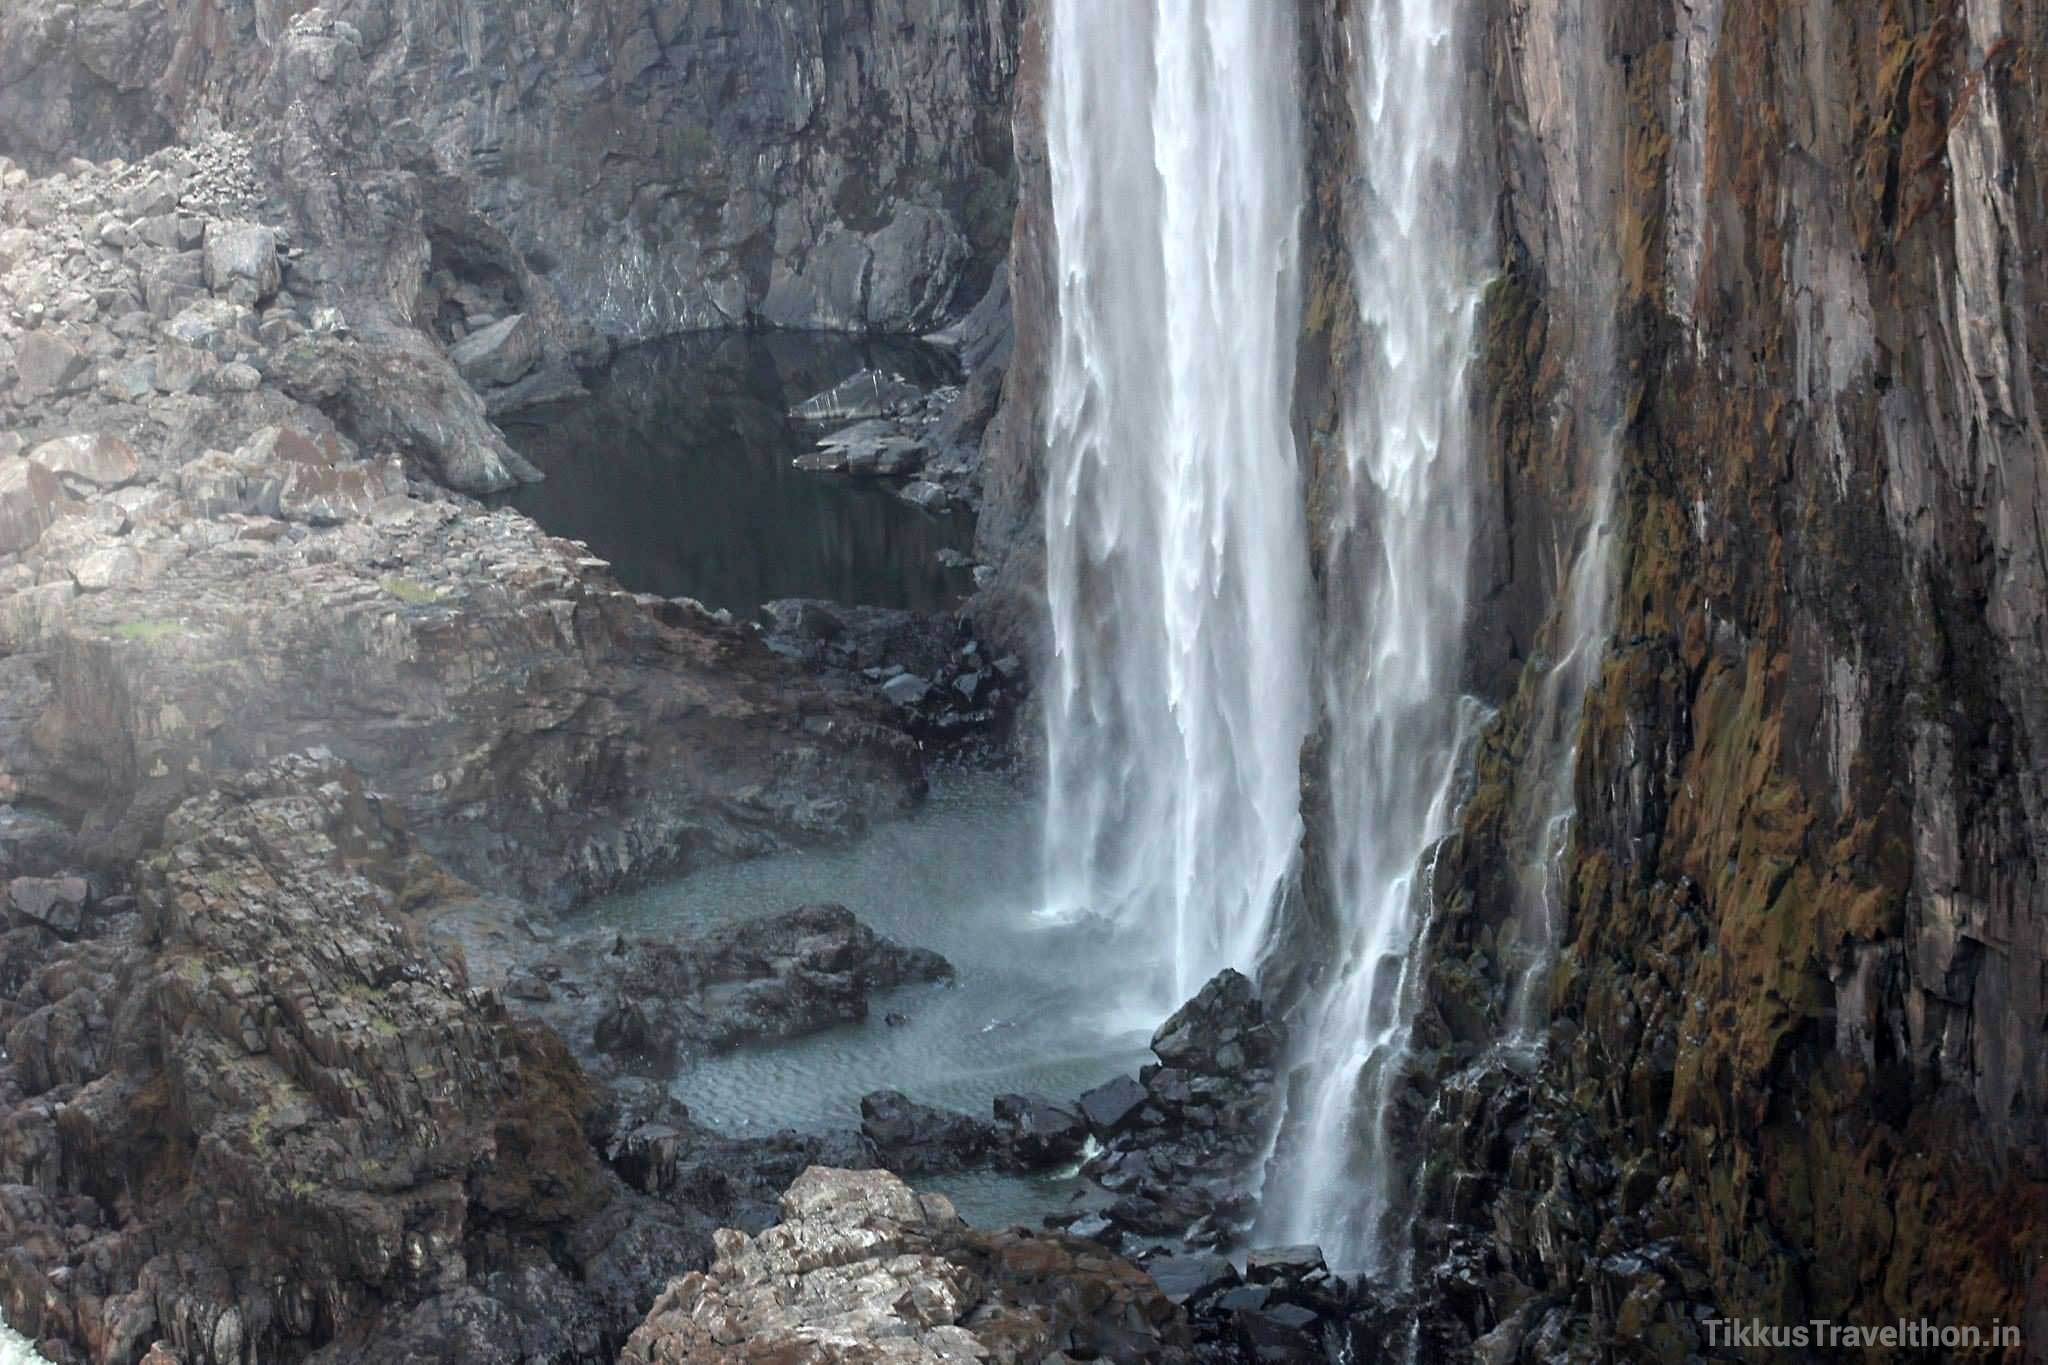 The falling sheet of water is the largest such in the world!